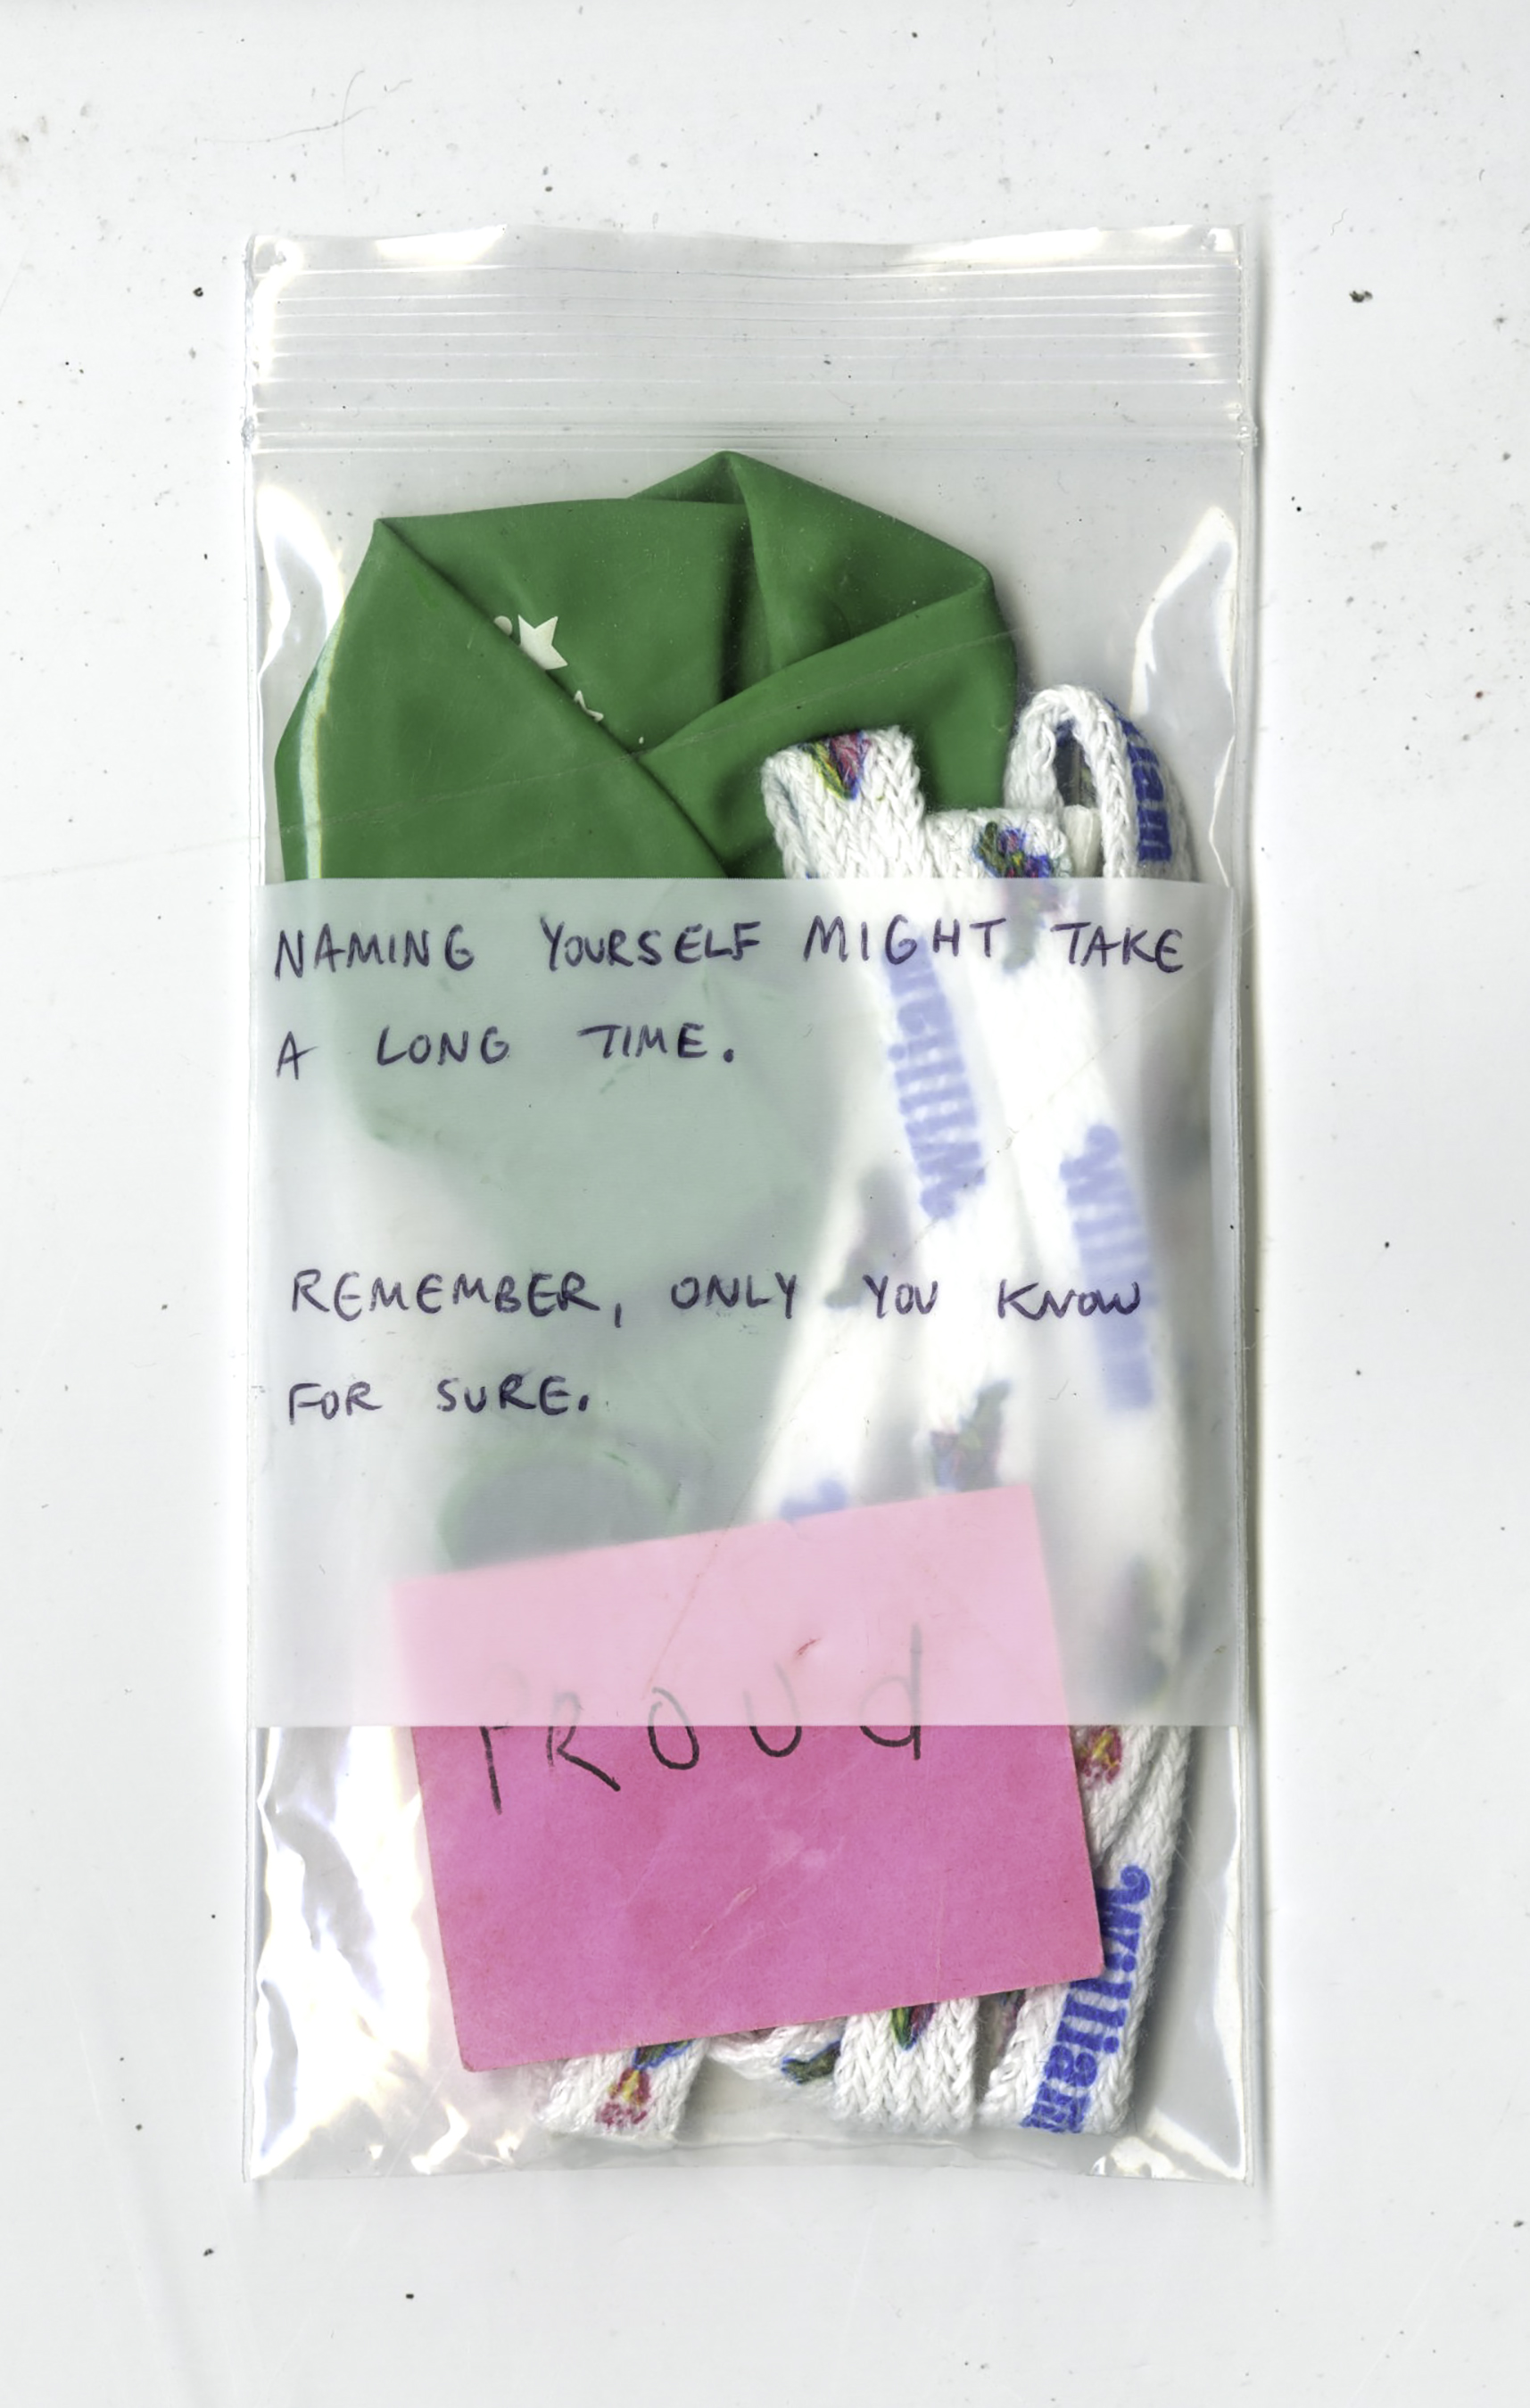 "Naming yourself might take a long time. Remember, only you know for sure. , Noah balloon, William shoelaces, ""proud"" sticky note, Luan Bahn Mi receipt from Red Emma's cafe, bag, 2016"